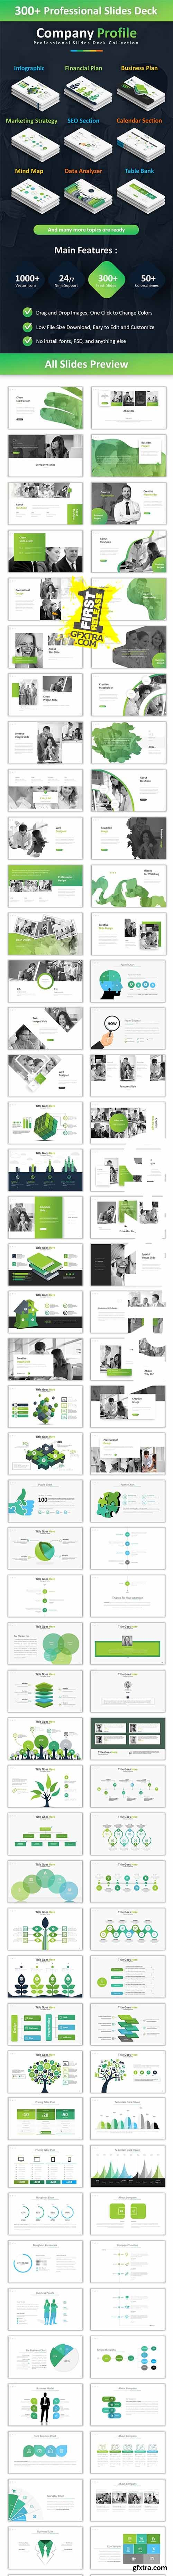 GraphicRiver - Company Profile Powerpoint 22198669